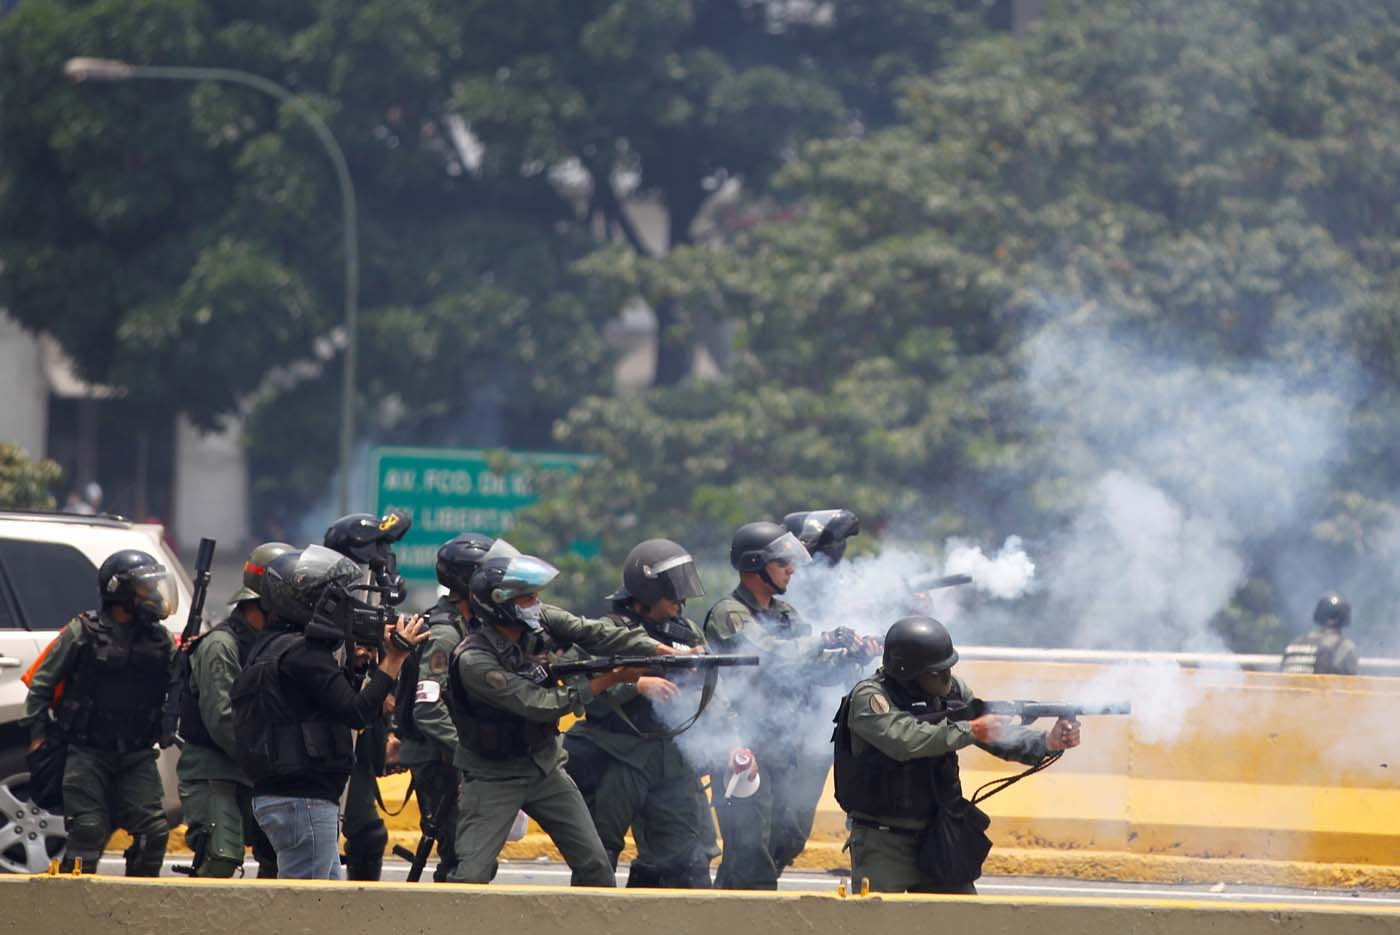 Riot police fire tear gas as demonstrators rally against Venezuela's President Nicolas Maduro's government in Caracas, Venezuela April 10, 2017. REUTERS/Christian Veron